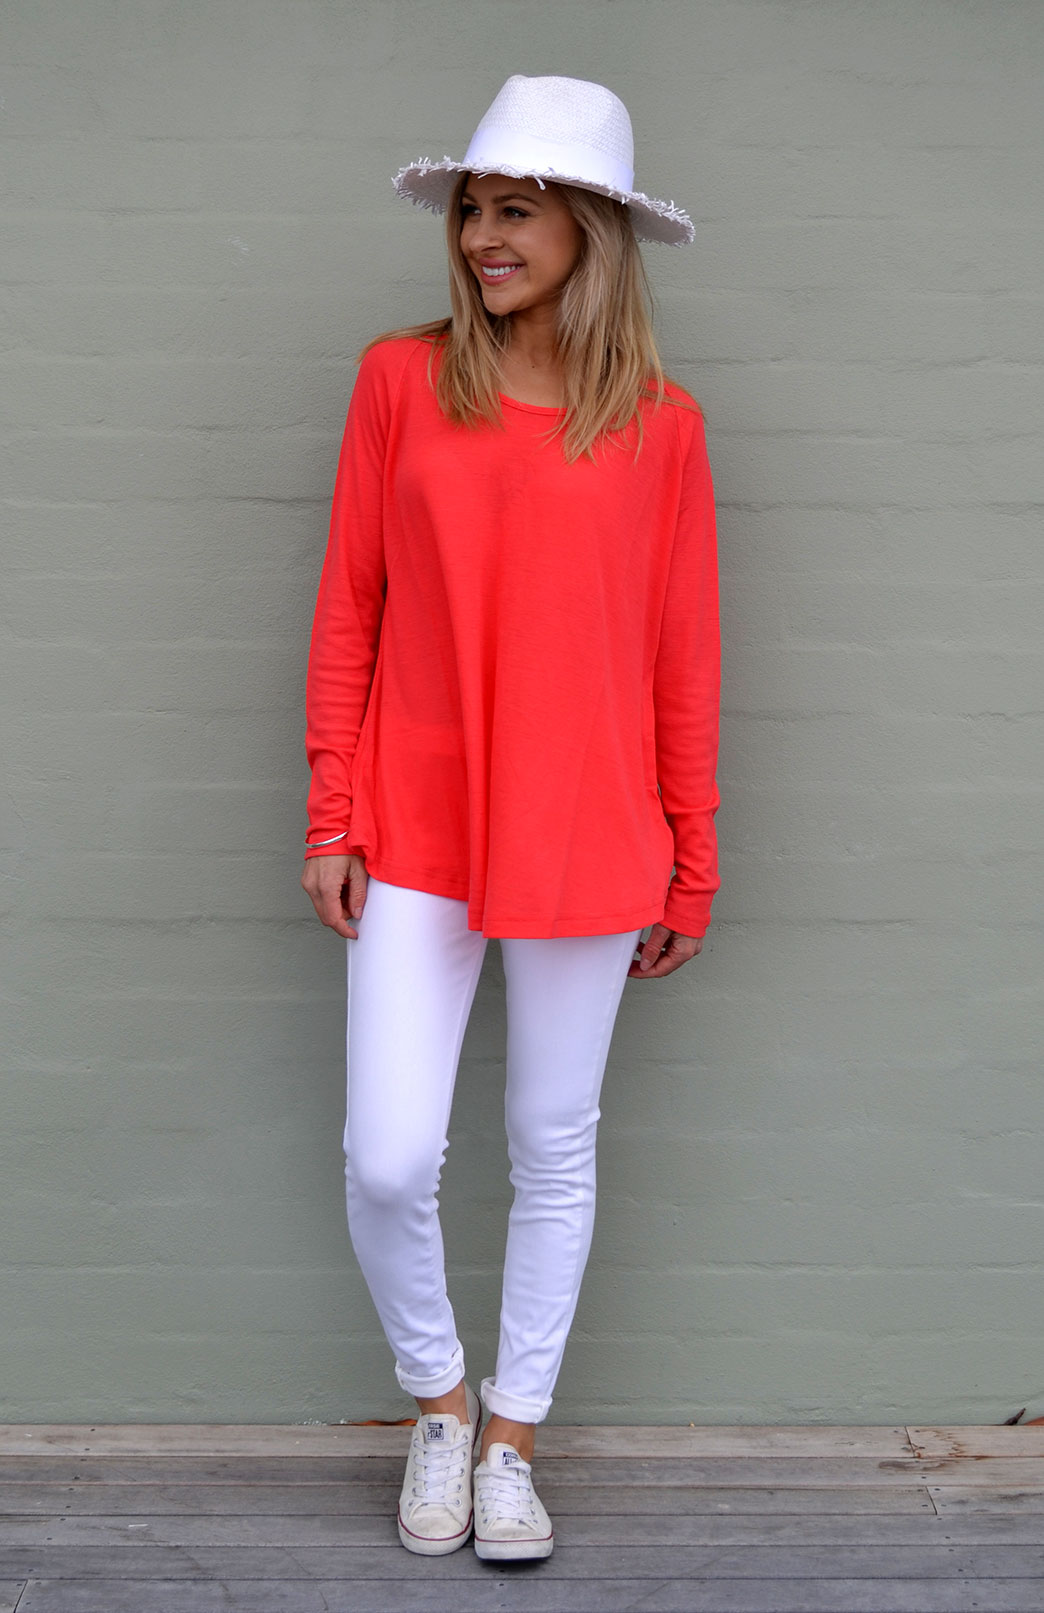 Rana Top - Women's Coral Pure Merino Wool Top with Long Sleeves, Scooped Neckline and Curved Hem - Smitten Merino Tasmania Australia